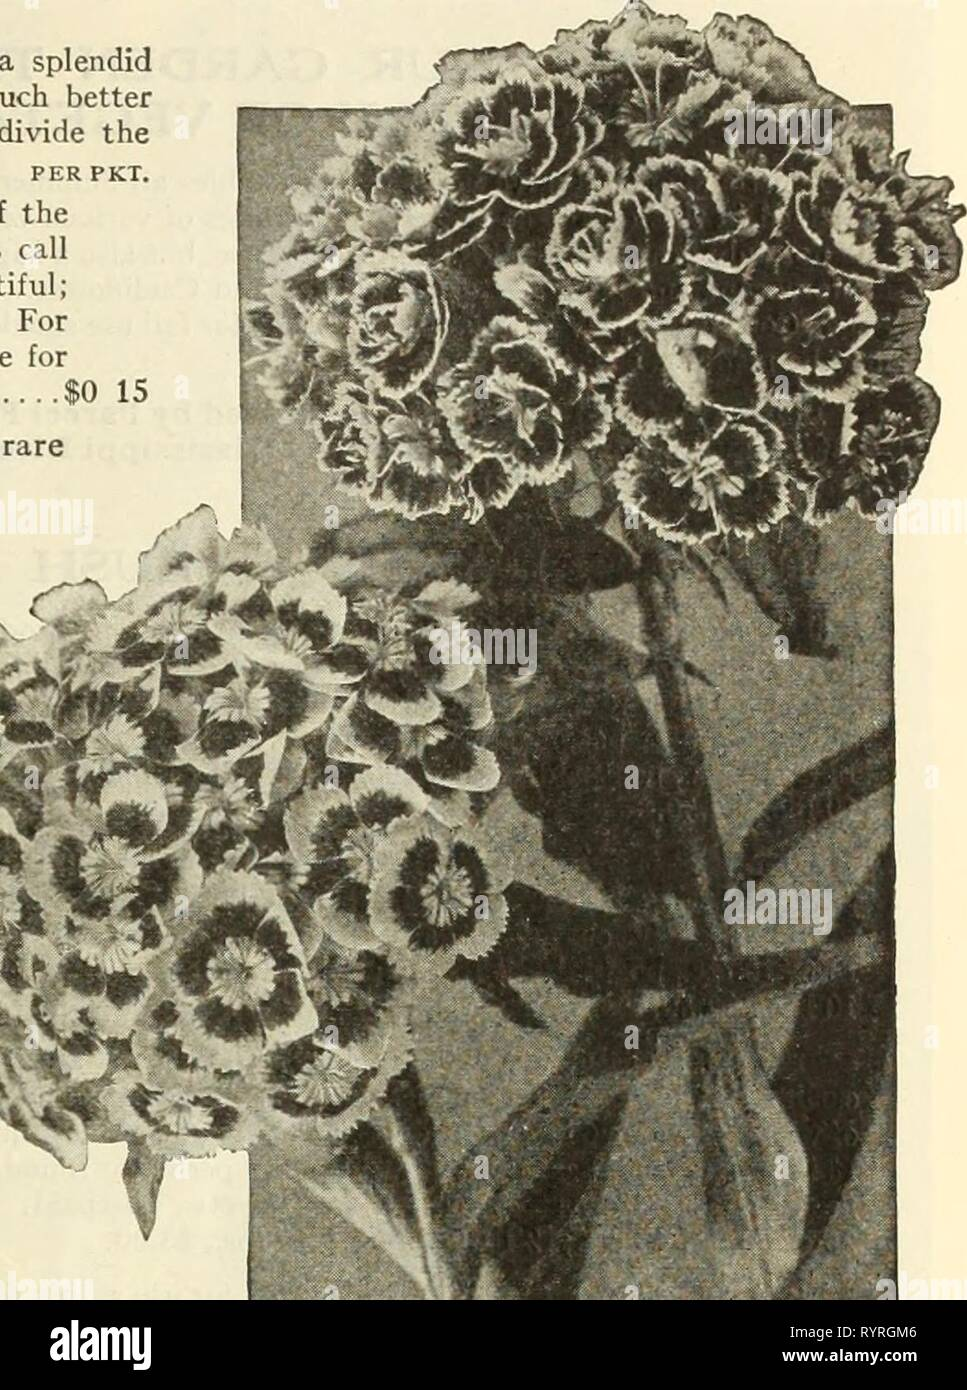 Dreer's mid-summer list 1925 (1925) Dreer's mid-summer list 1925 . dreersmidsummerl1925henr Year: 1925  HENRY A. DREER, PHILADELPHIAâFLOWER SEEDS 21 Sweet William (Dianthus Barbatus) A well-known, attractive, free-flowering hardy perennial, producing a splendid effect in beds and borders with their rich and varied flowers. It is much better to raise new, vigorous, young plants from seed every season than to divide the old plants. per pkt. 4282 Newport Pink. A distinct new color which originated in one of the mky+Jjp*tf''*0%%%%%%%%%%%%%%%%to^5{r far-famed gardens at Newport, R. I. In color it  - Stock Image